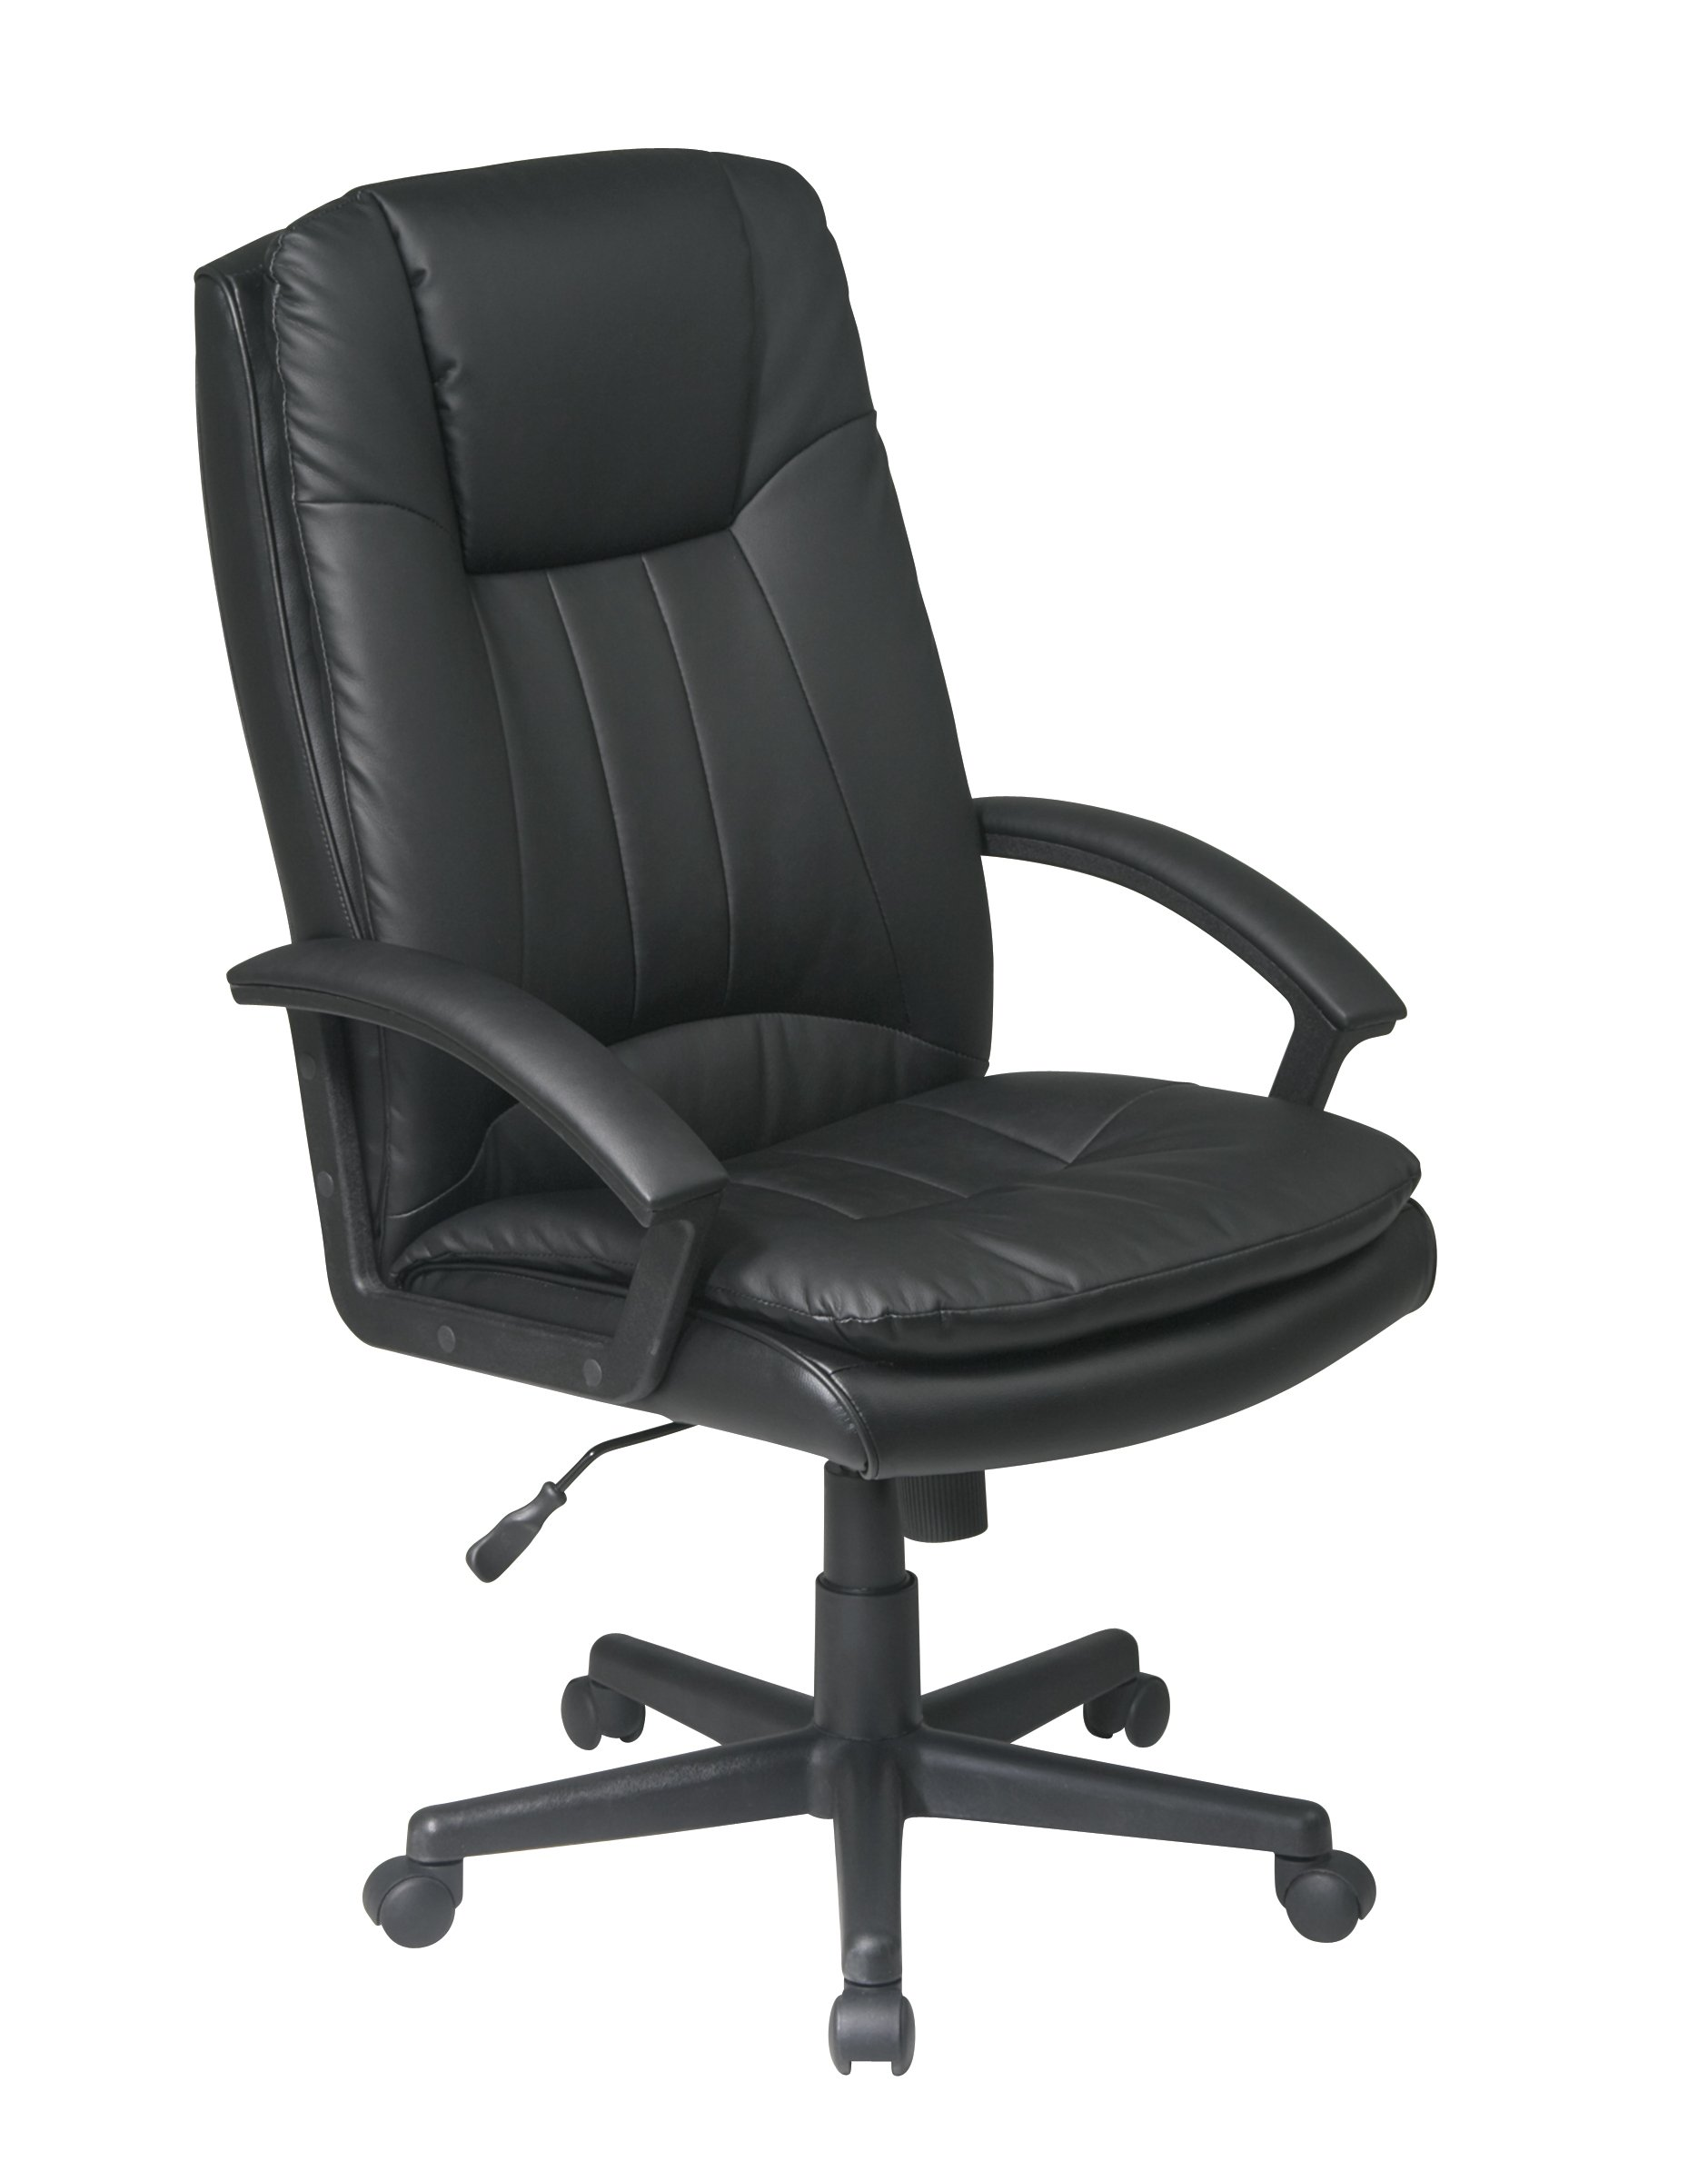 Office Star Deluxe High Back Eco Leather Thick Padded Contour Seat and Back with Built-in Lumbar Support Adjustable Executive Office Chair, Black